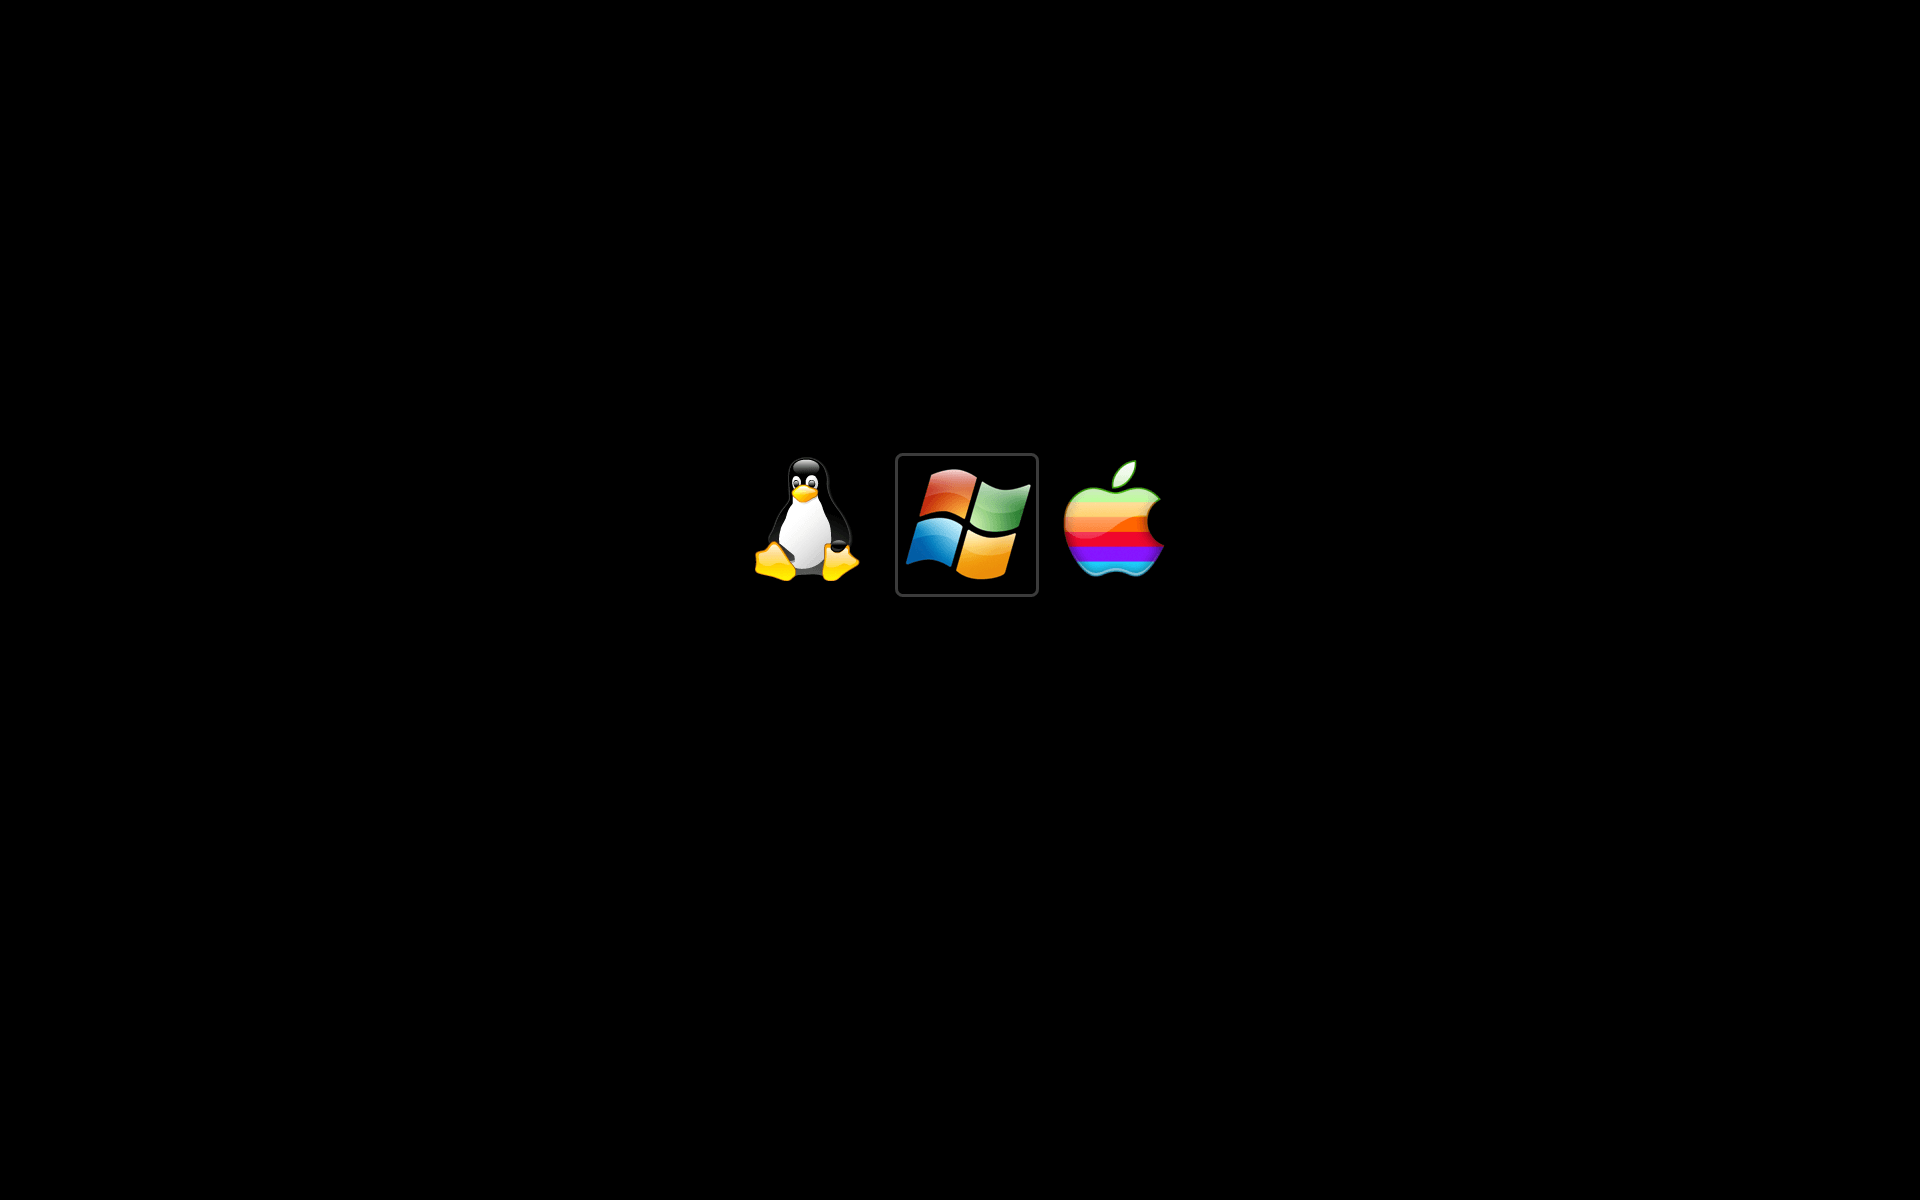 Windows Vs Mac Wallpapers